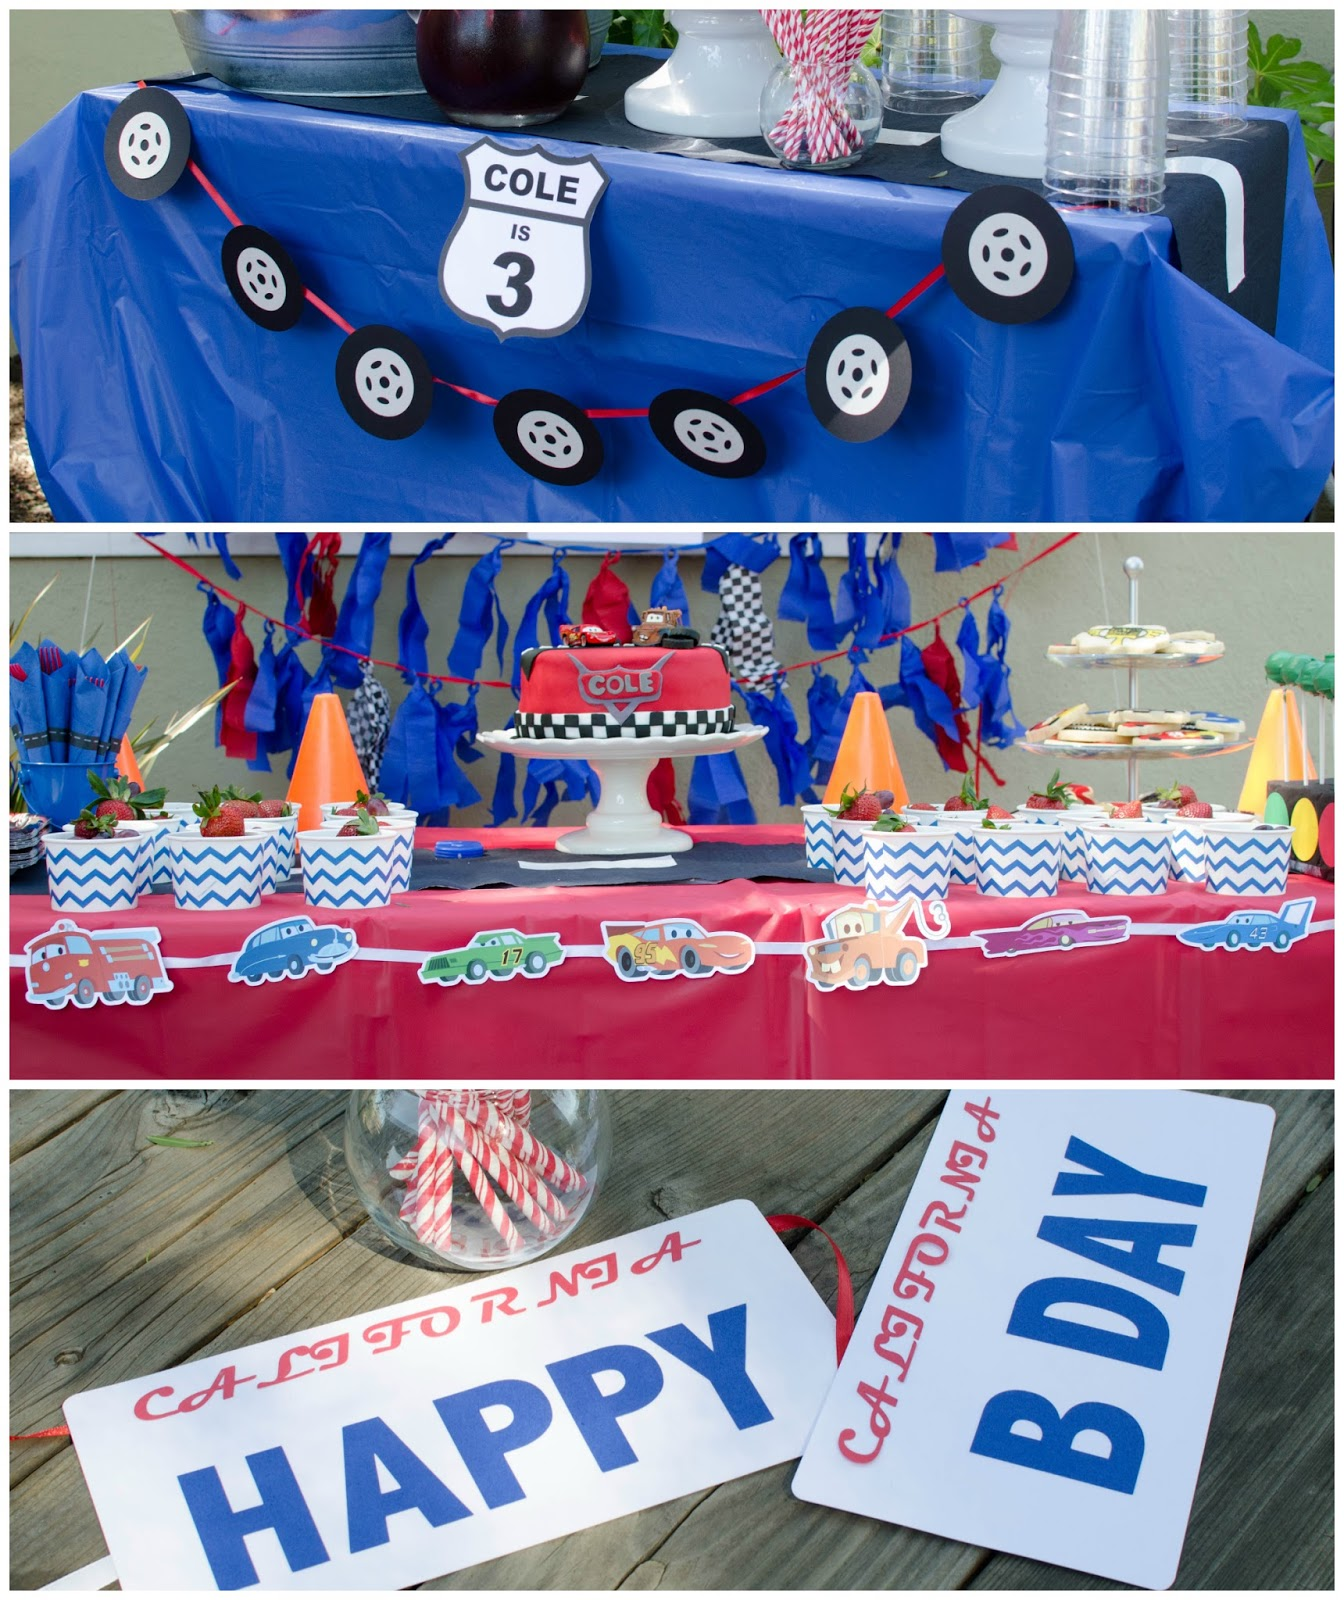 All The Tables Were Covered With Red And Blue Table Covers To Which I Added DIY Road Runners Traffic Cones Or Cozy As My Sons Calls Them